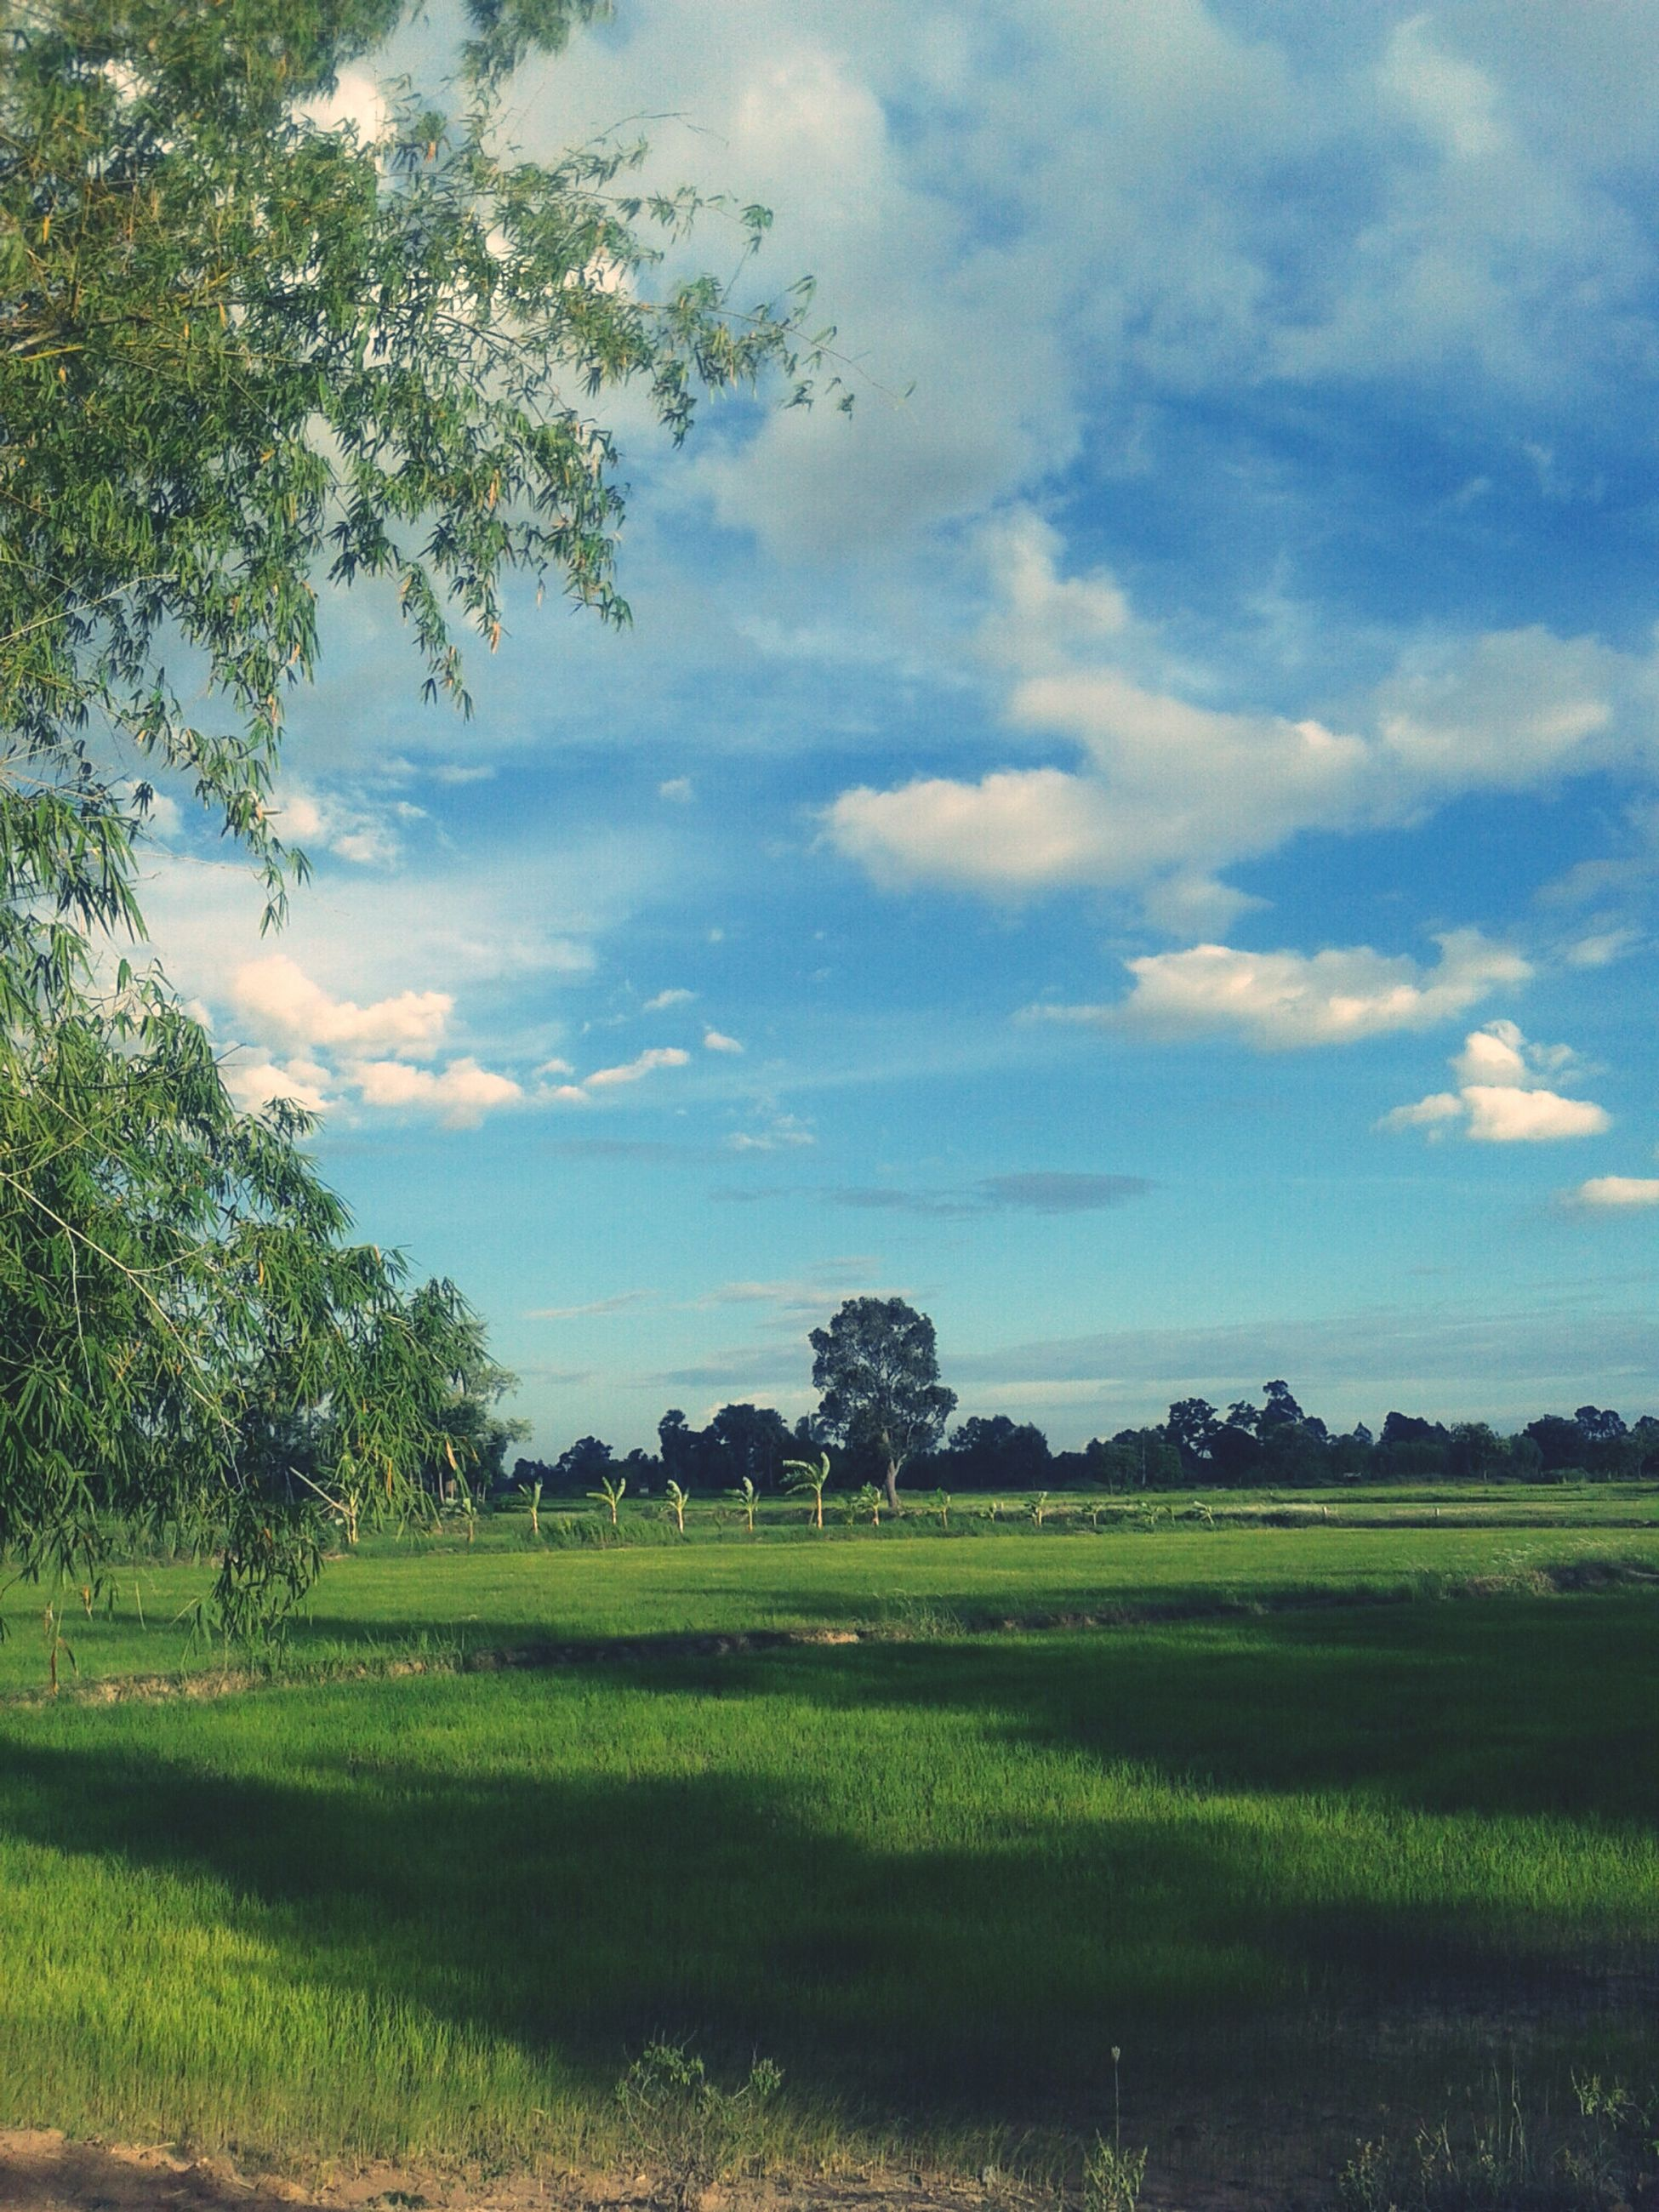 sky, tree, field, tranquil scene, tranquility, landscape, growth, cloud - sky, grass, beauty in nature, green color, scenics, nature, rural scene, agriculture, cloud, cloudy, grassy, farm, plant